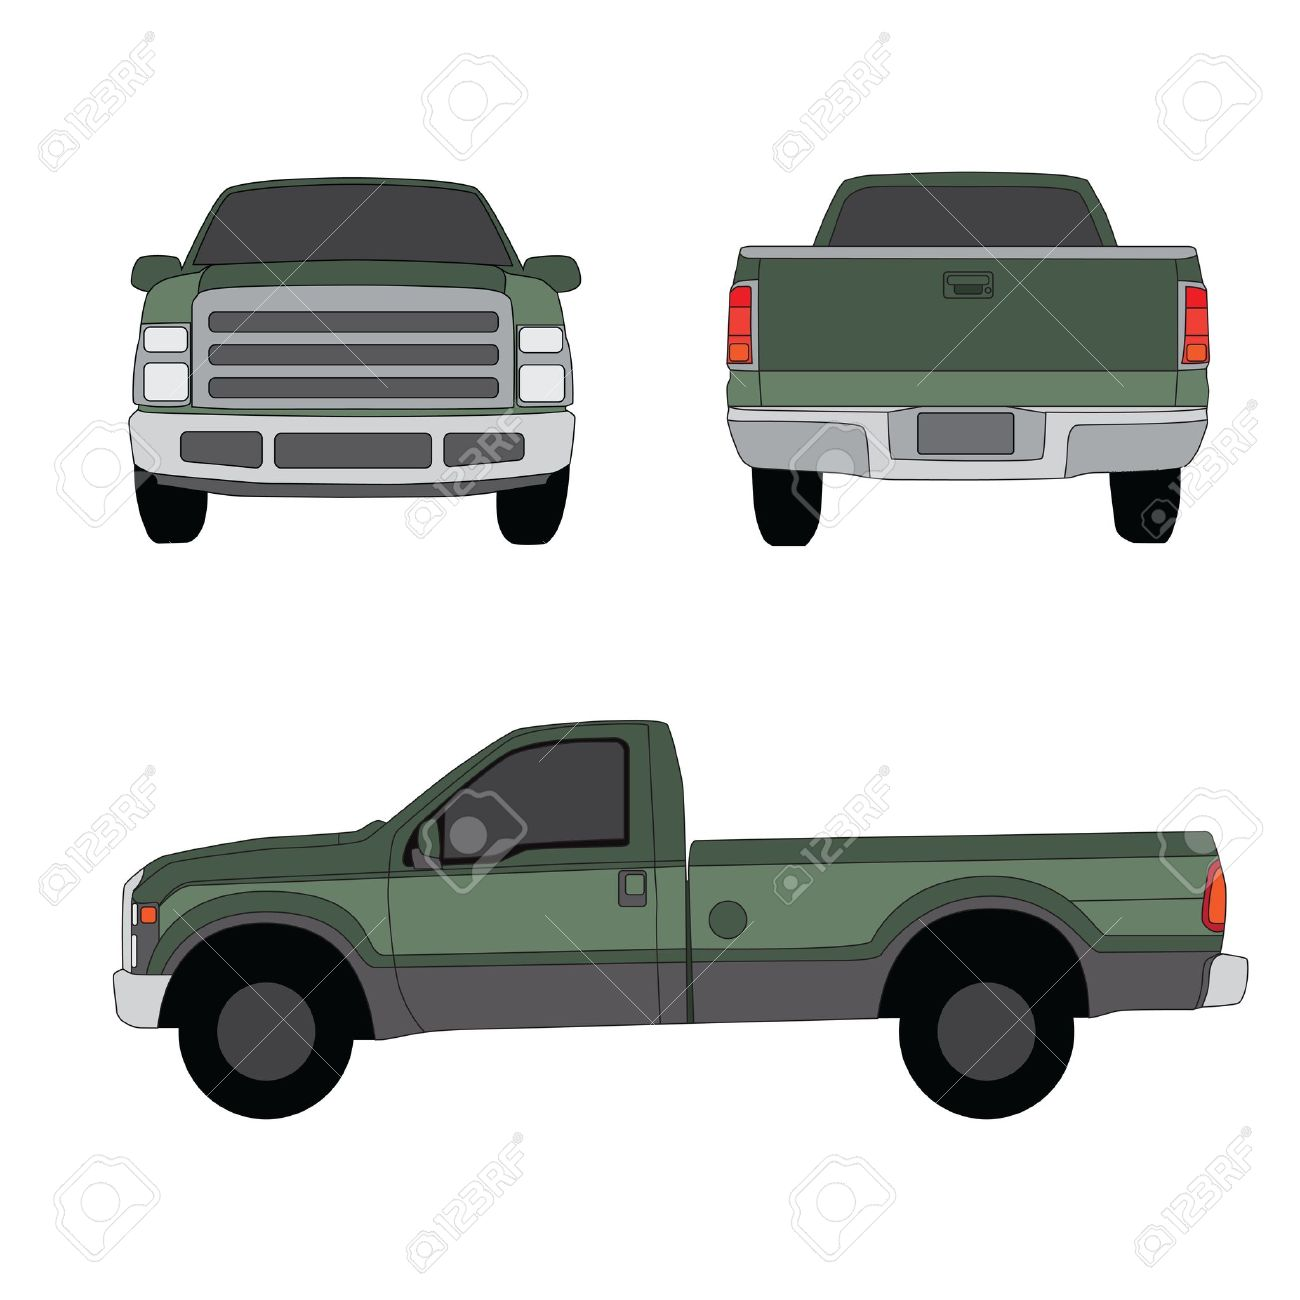 Pick-up truck green three sides view vector illustration - 14671849